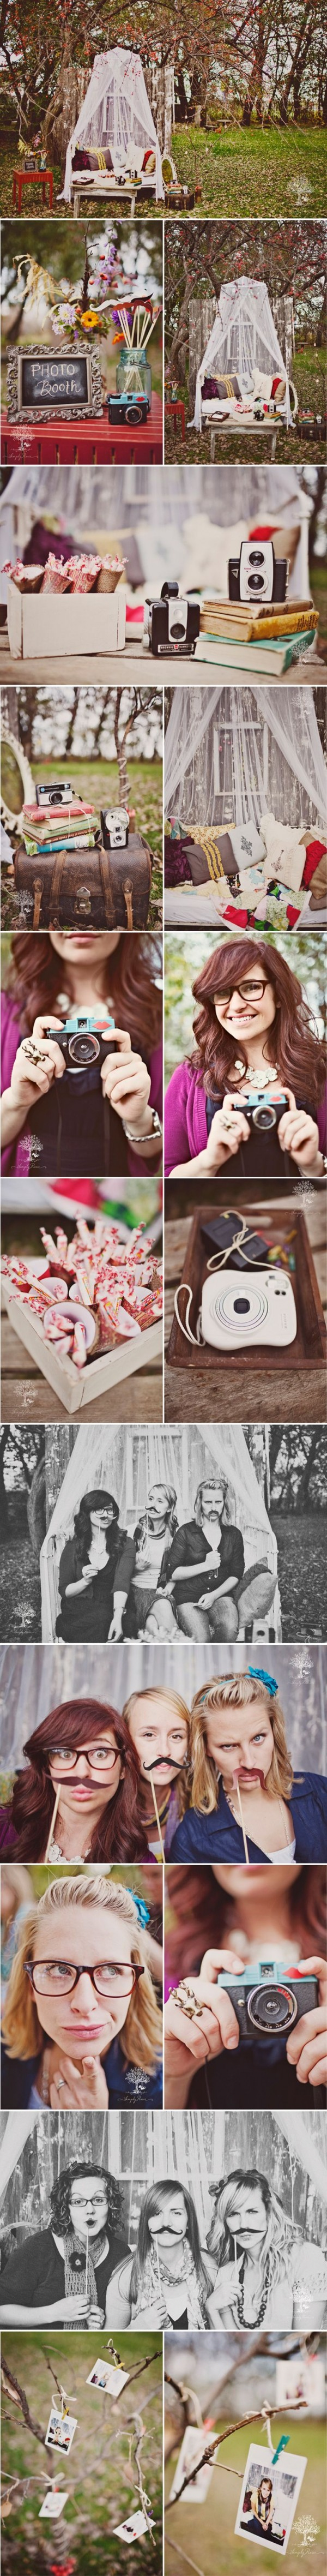 Photo Booth Ideas8